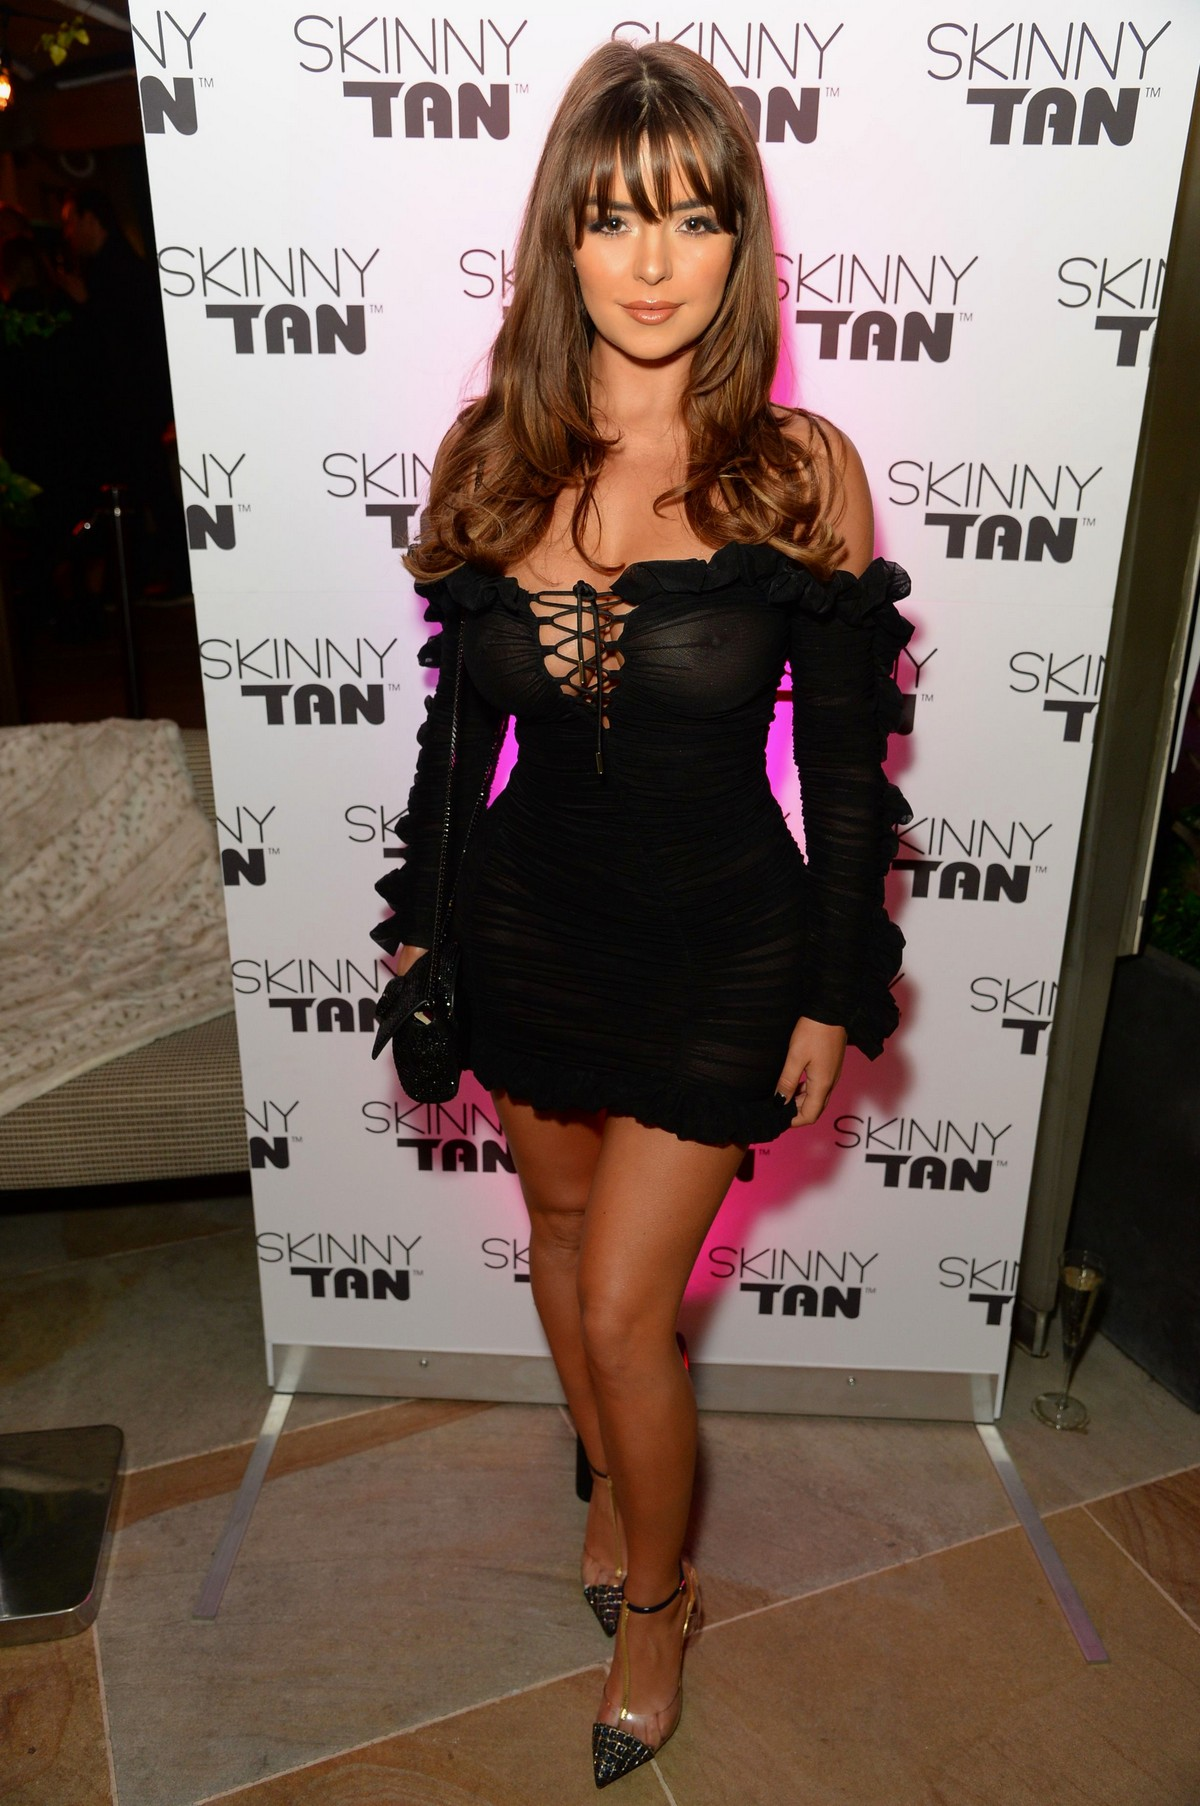 Demi Rose Mawby seen in Stylish Short Dress at The Skinny Tan Choc Range launch party in Madison, London 2019/11/19 22